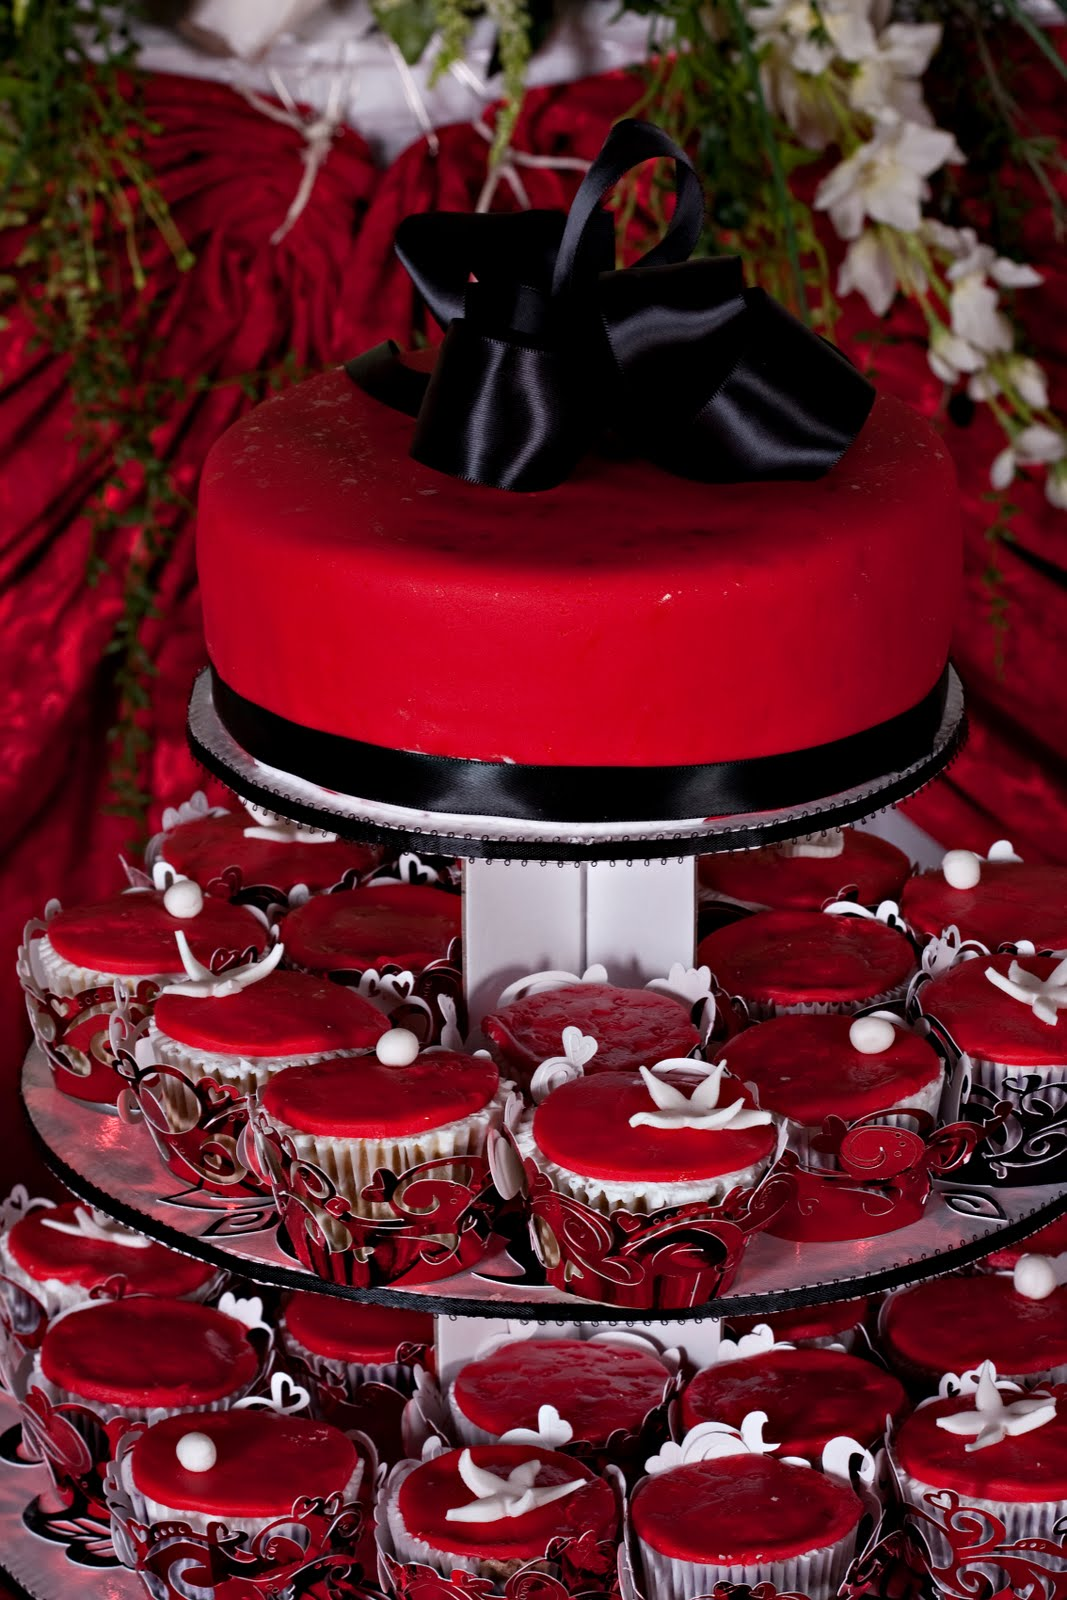 Jocelyn s Wedding Cakes and More....: Leslie s Debut Cake